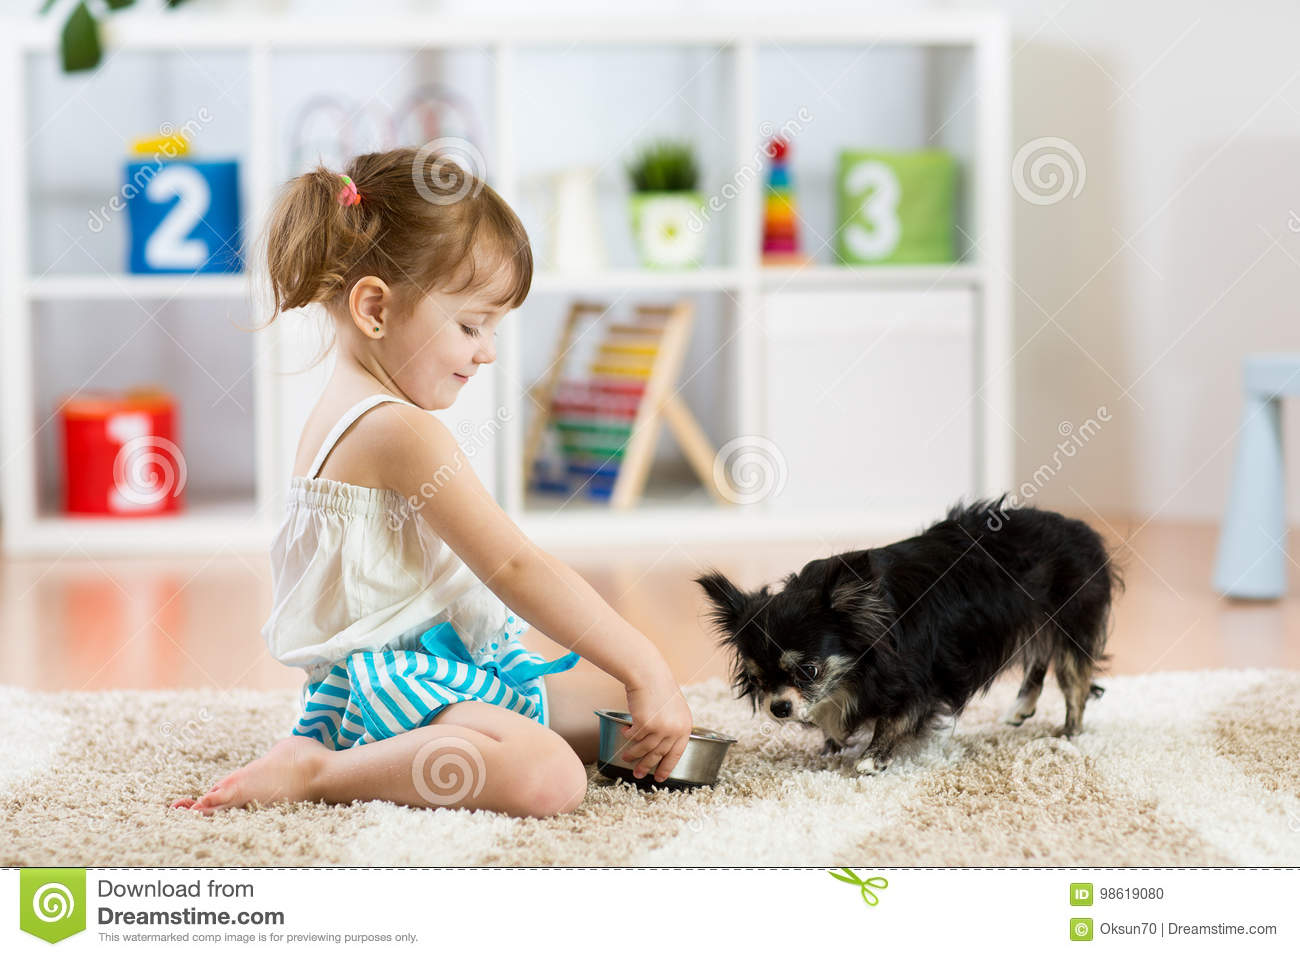 Little girl feeds Chihuahua dog in children room. Kids pet friendship